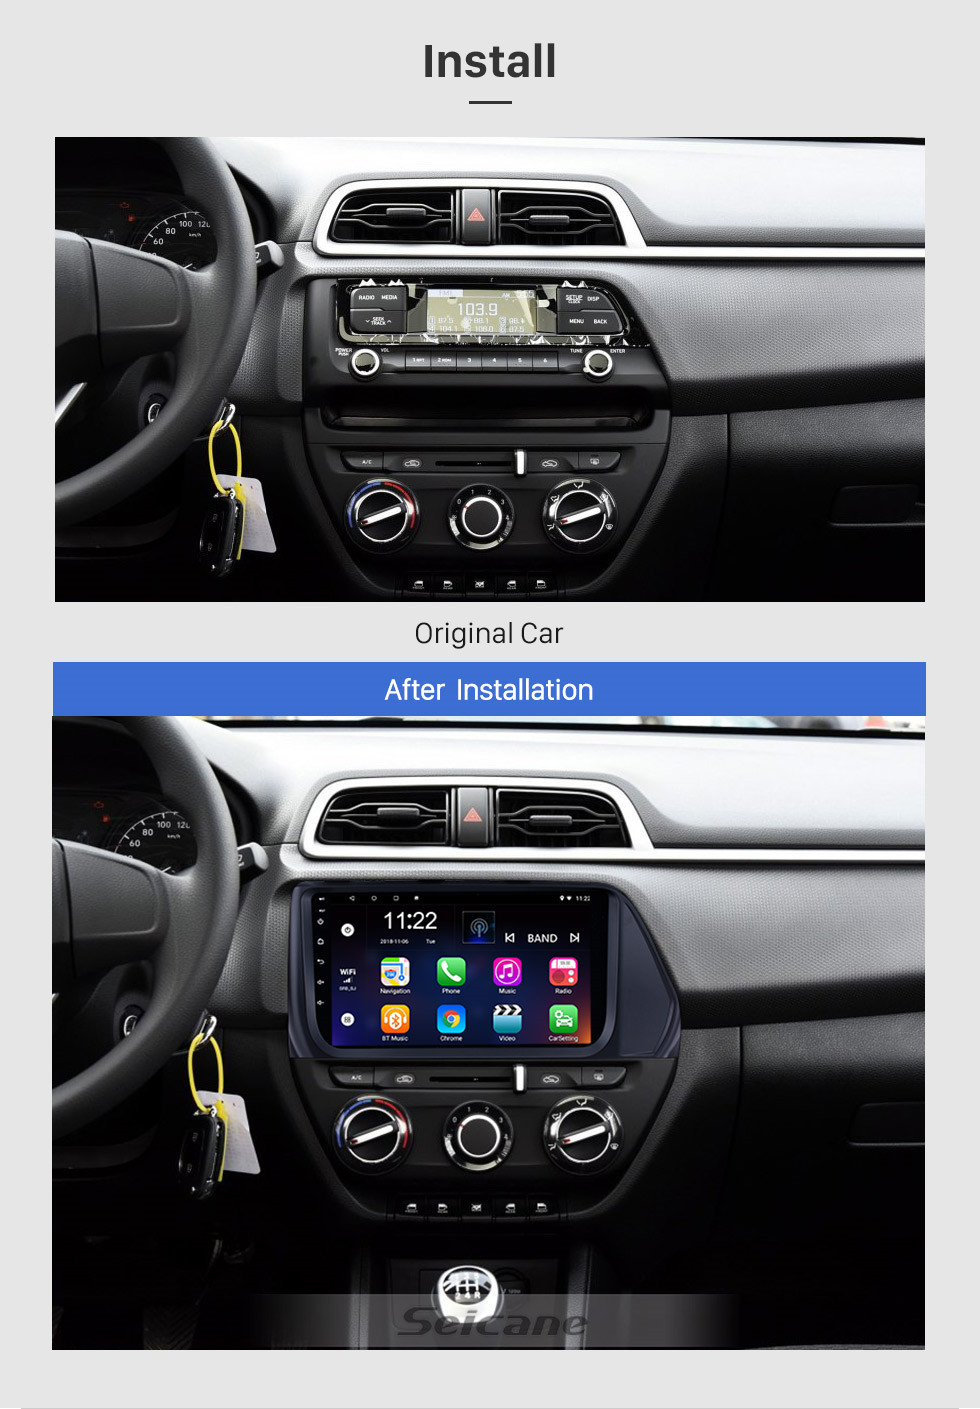 Seicane 9 inch 2017 Hyundai VERNA Android 10.0 Car Multimedia Player Bluetooth Radio with GPS Navigation System Wifi music Mirror Link USB support Steering Wheel Control DVR Rearview Camera OBD2 DAB+